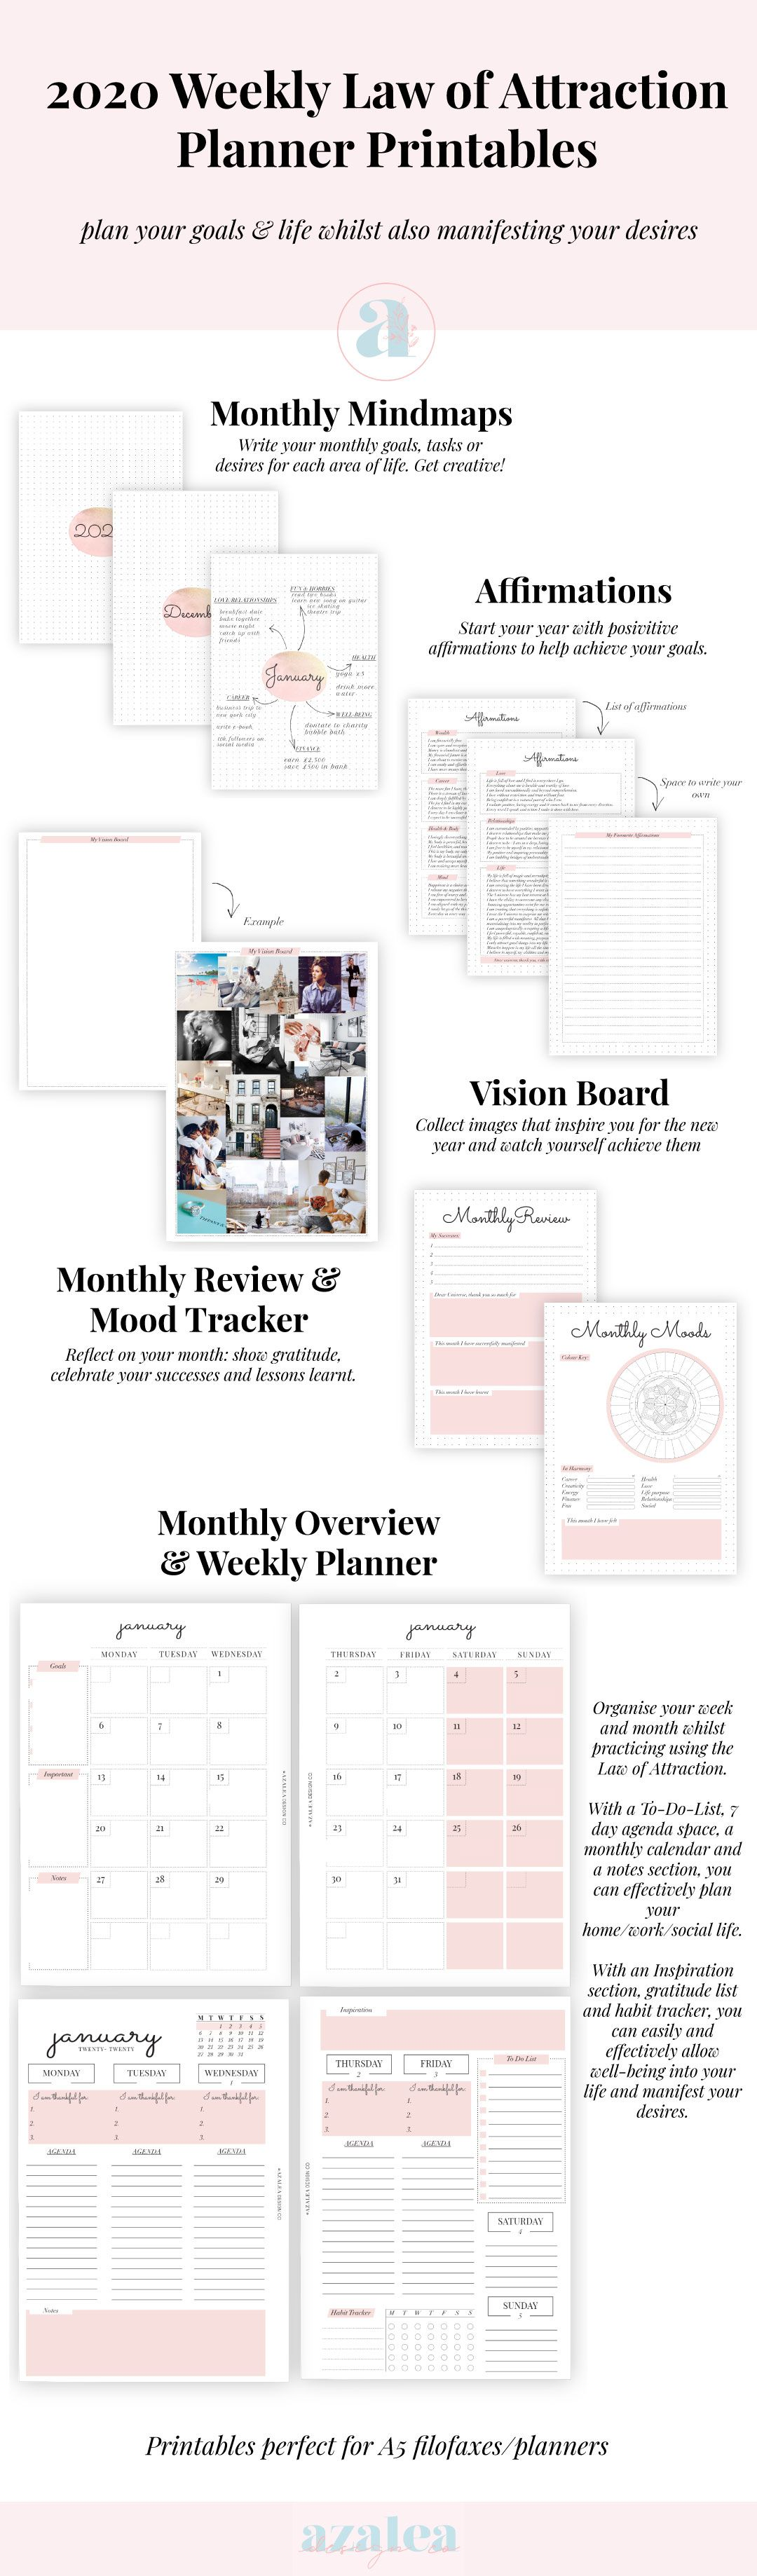 Law Of Attraction Weekly Planner Printable Pack